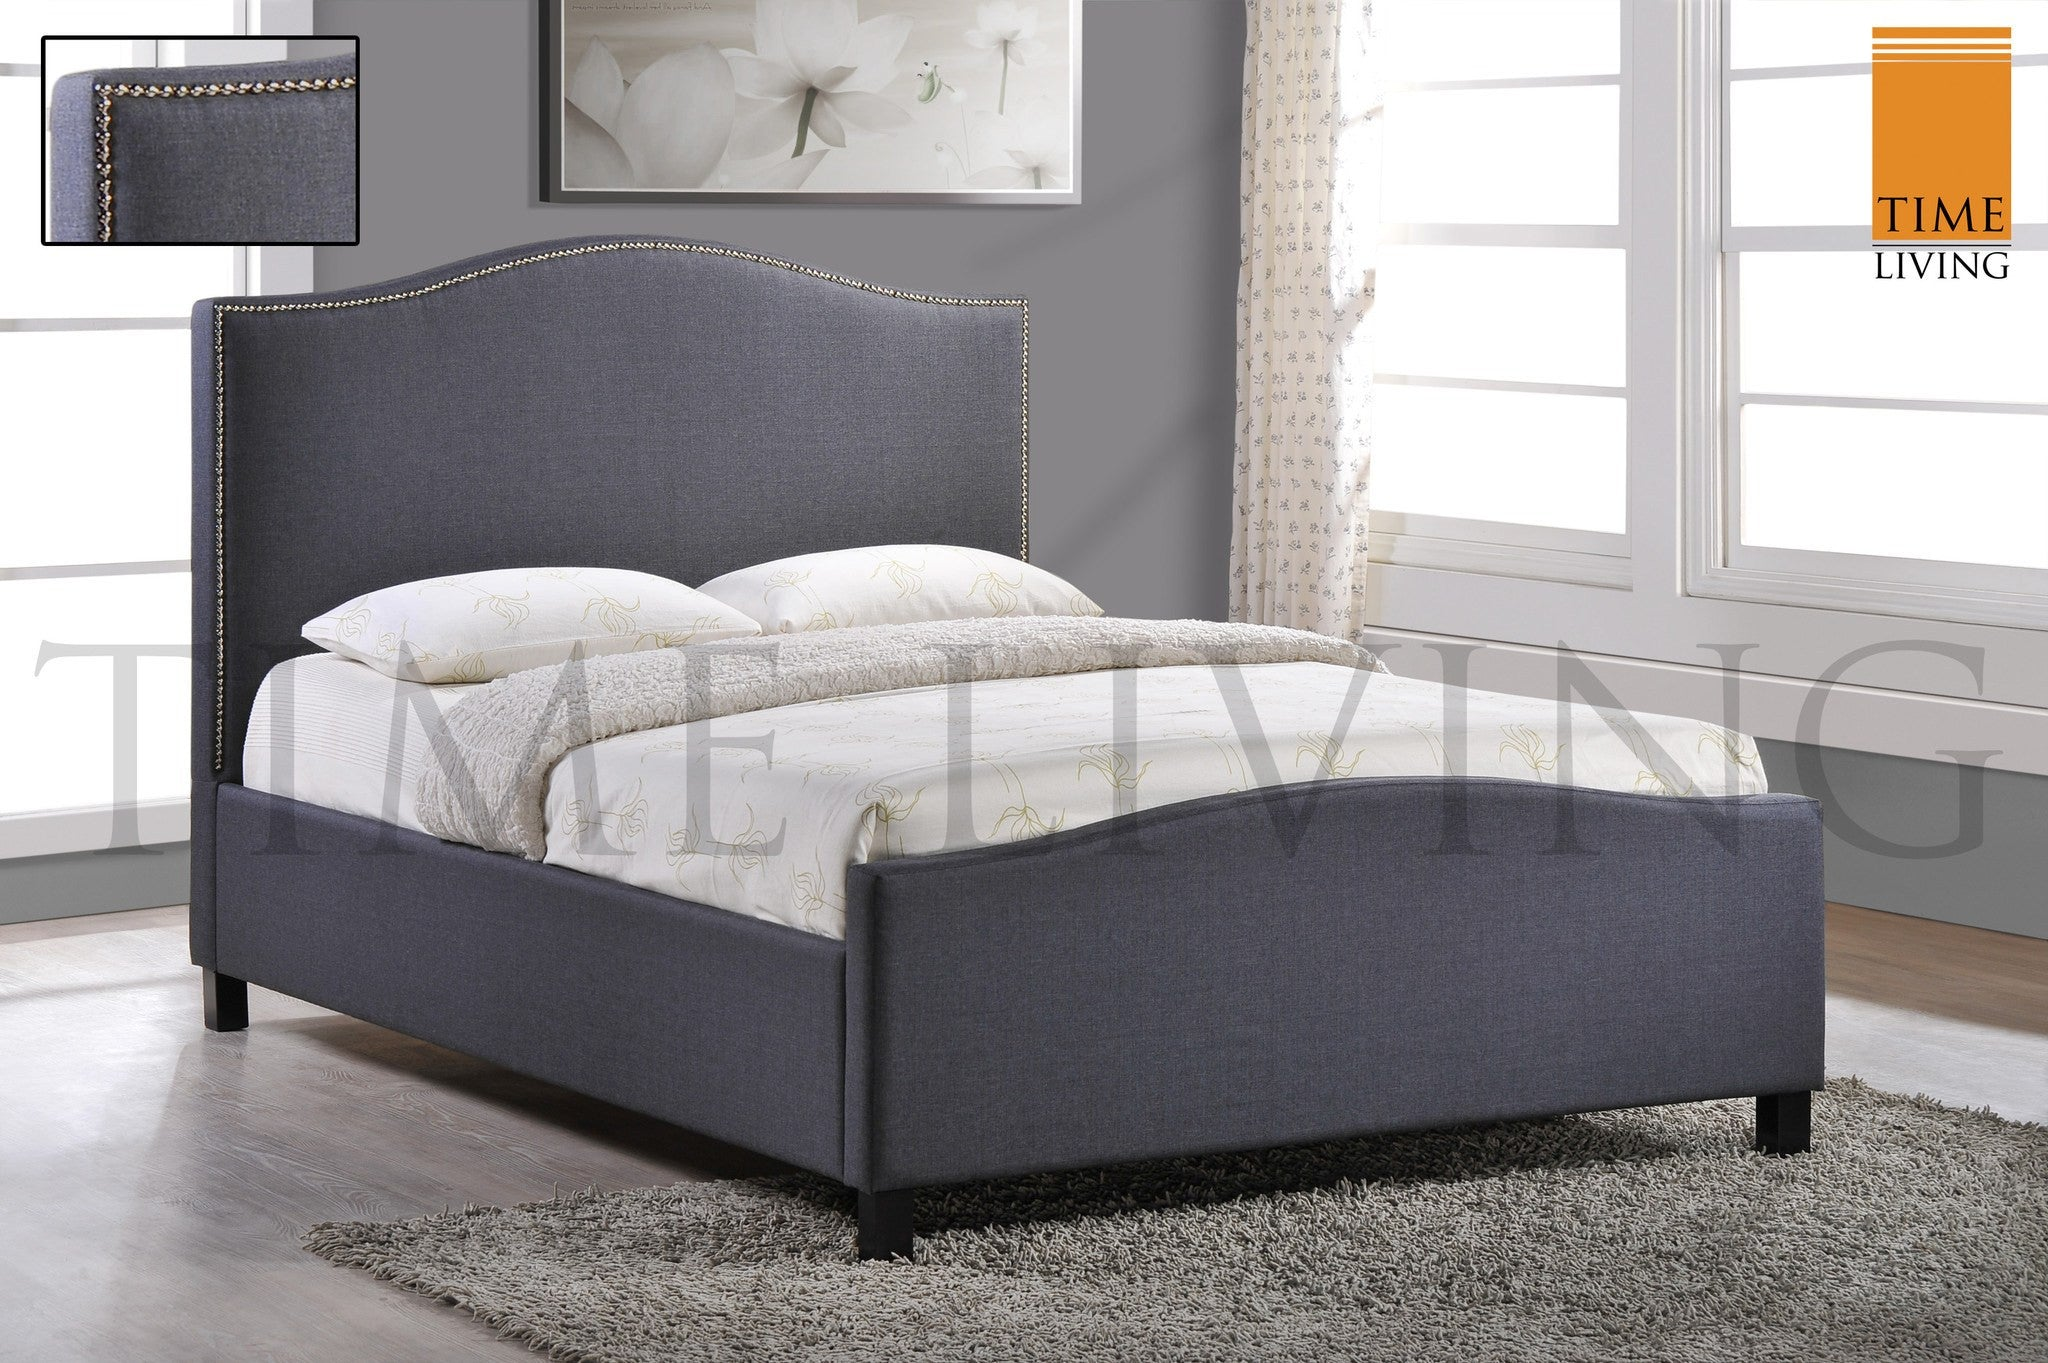 TIME LIVING Tuxford Grey Fabric Bed Frame